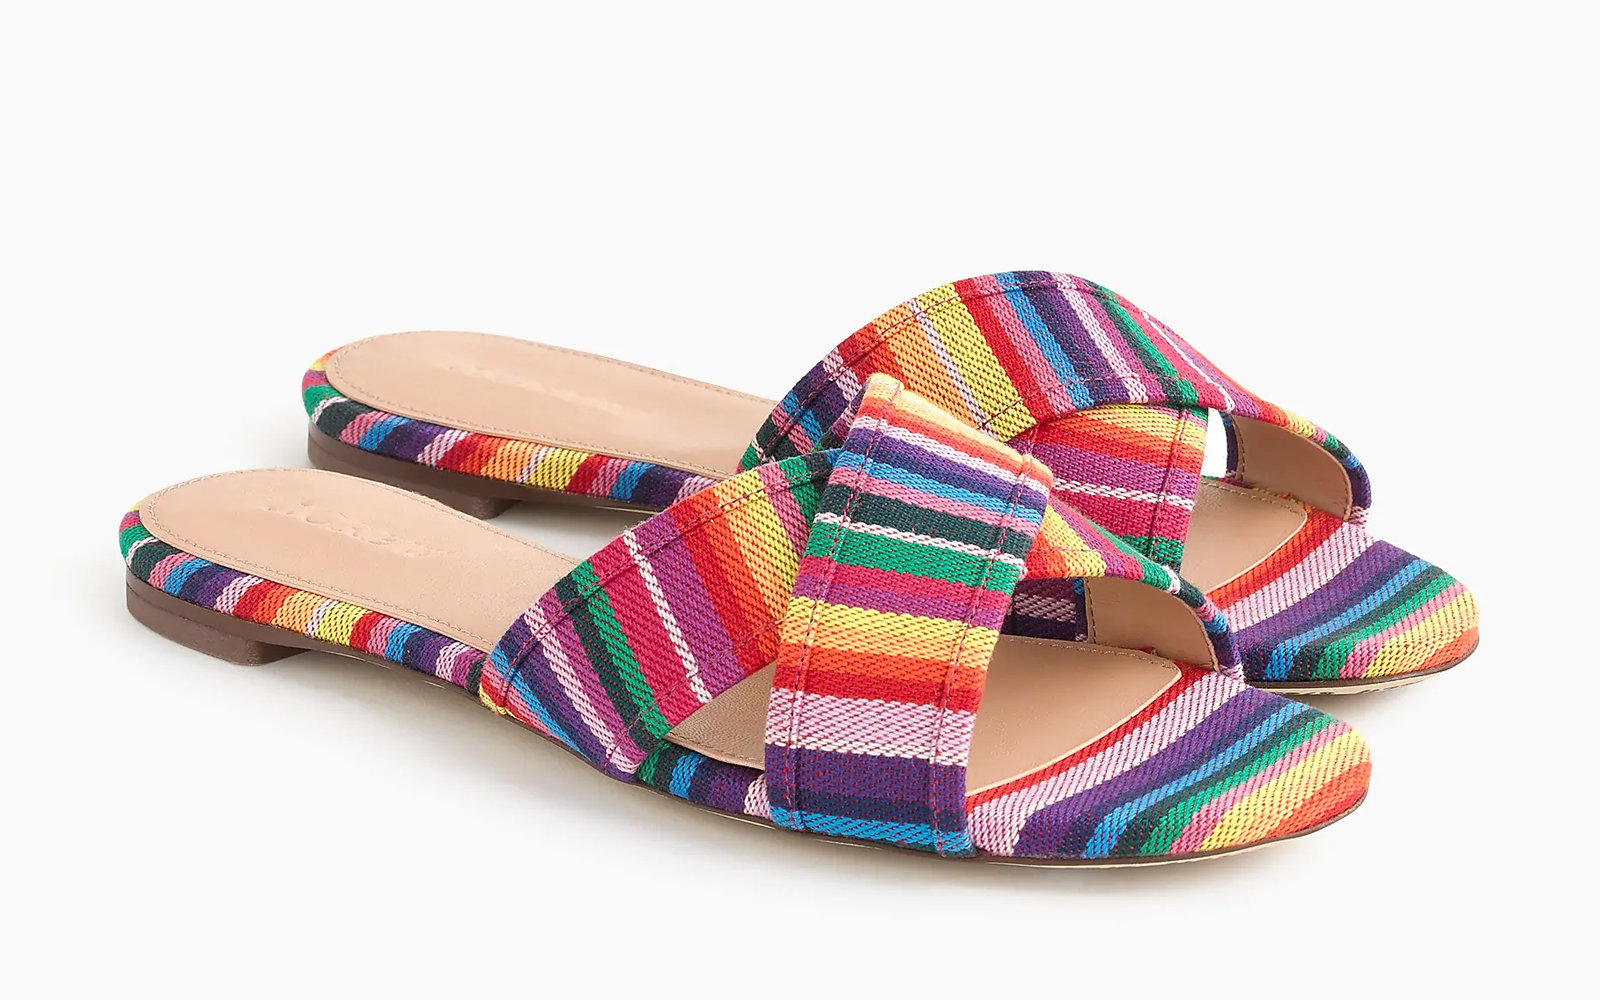 J.Crew Midsummer Sandals Sale